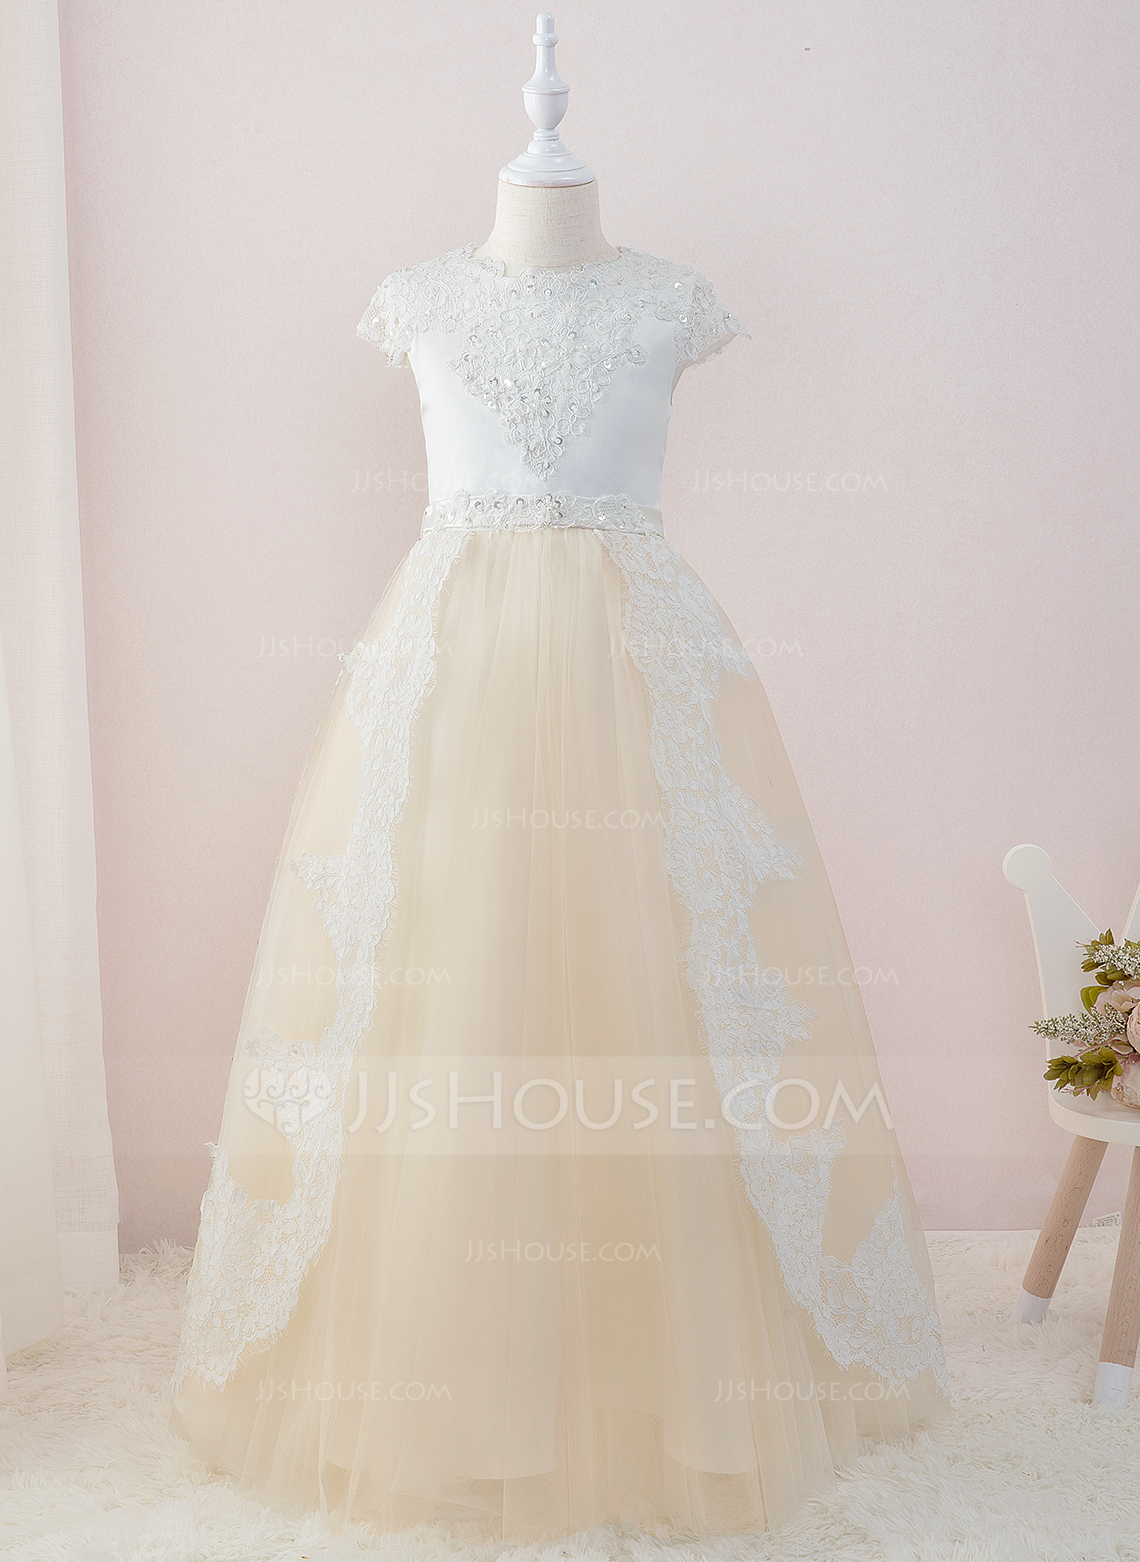 Ball-Gown/Princess Floor-length Flower Girl Dress - Satin/Tulle/Lace Short Sleeves Scoop Neck With Beading/Sequins